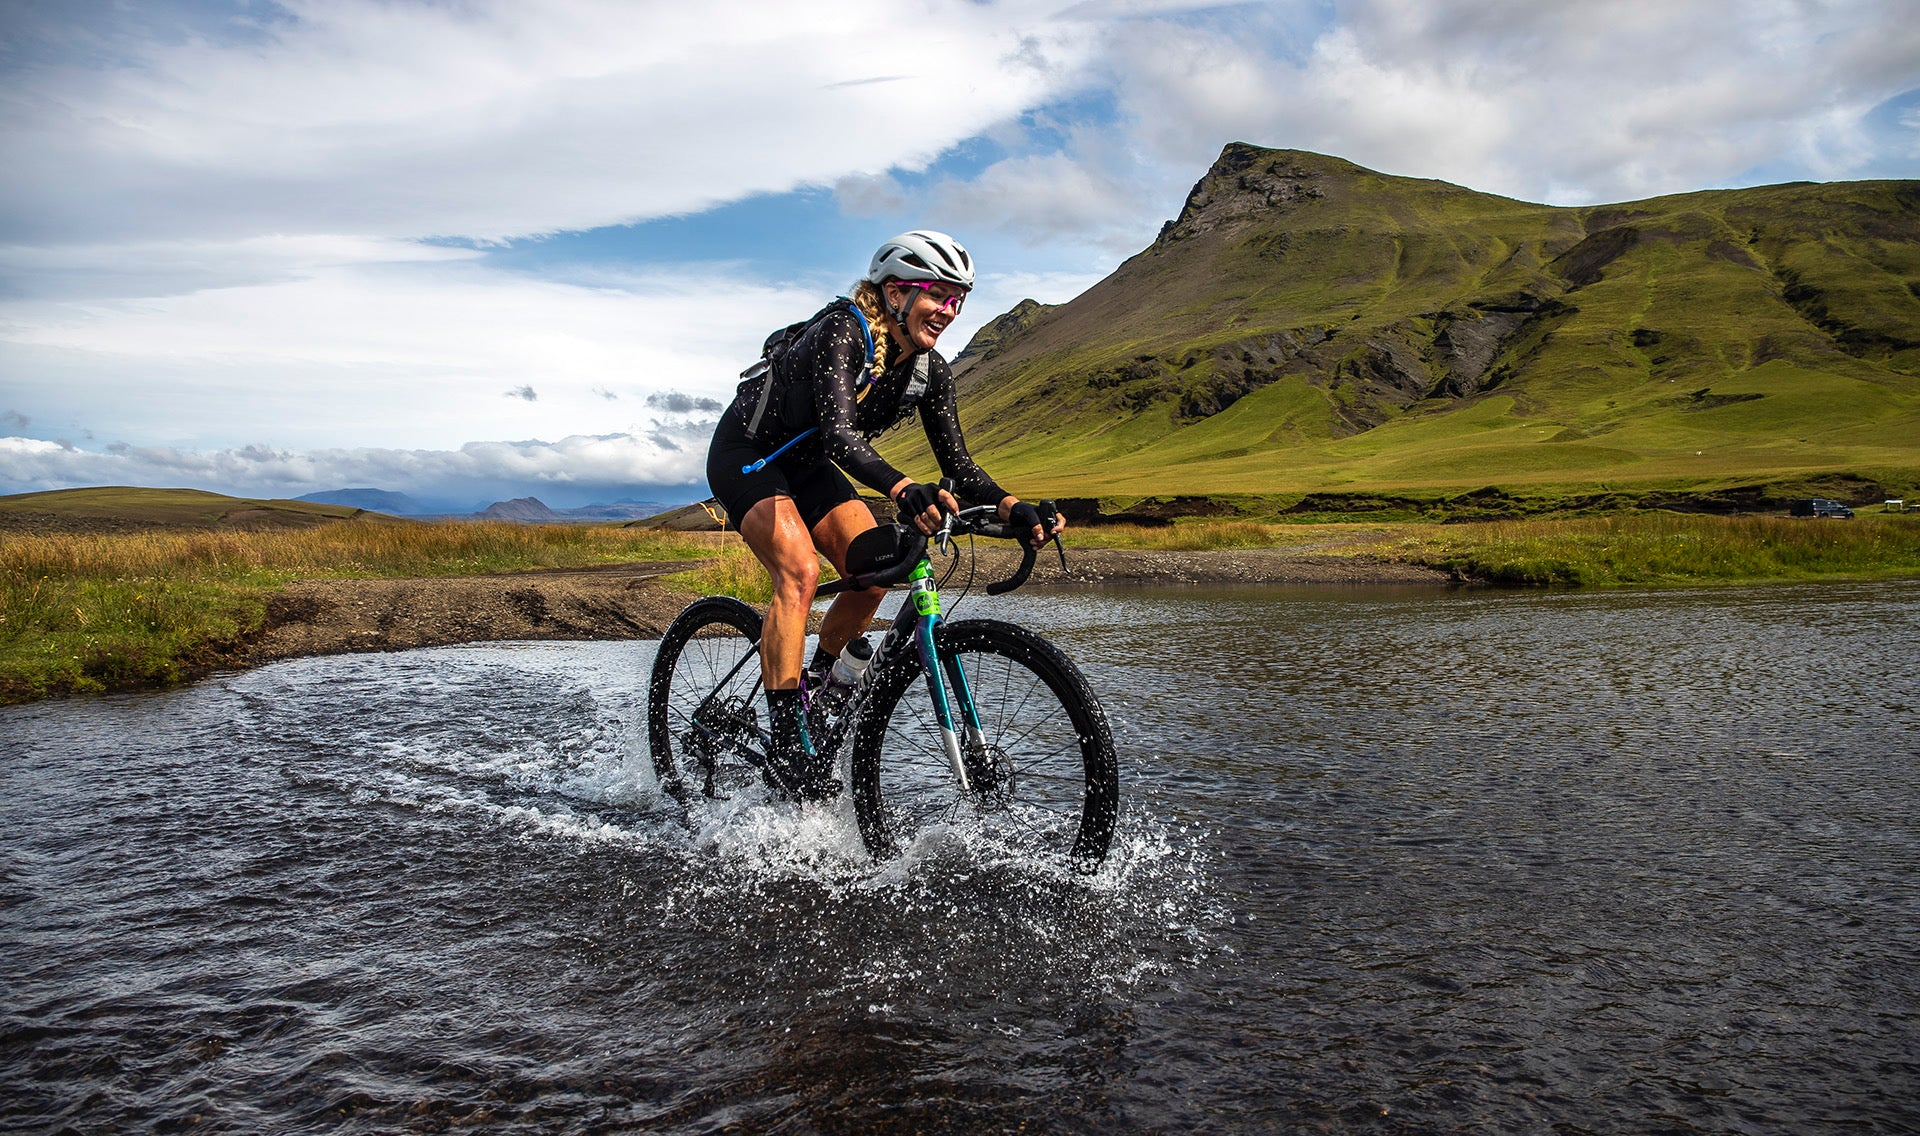 Alison Tetrick riding The Rift Iceland gravel race